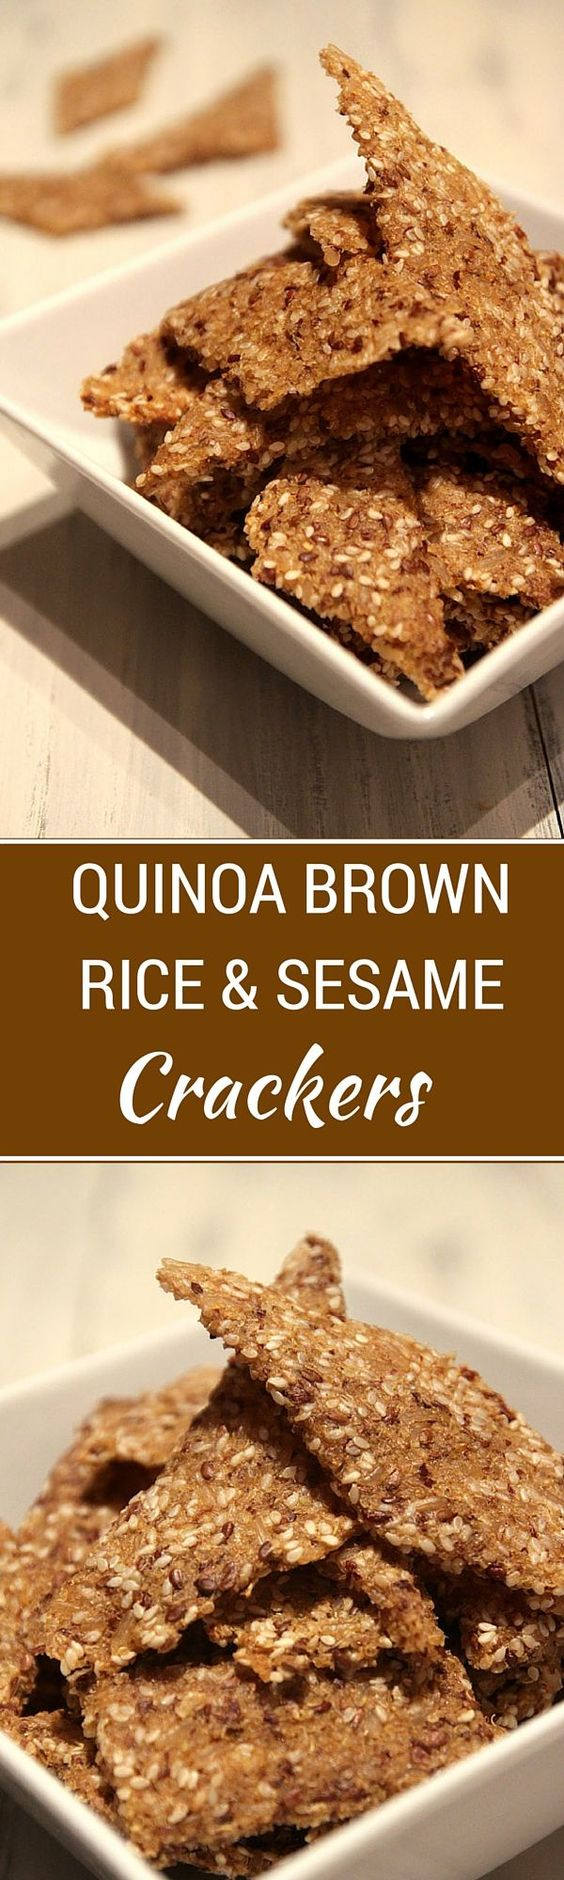 ... crackers parmesan crackers quinoa crackers with seeds recipes dishmaps